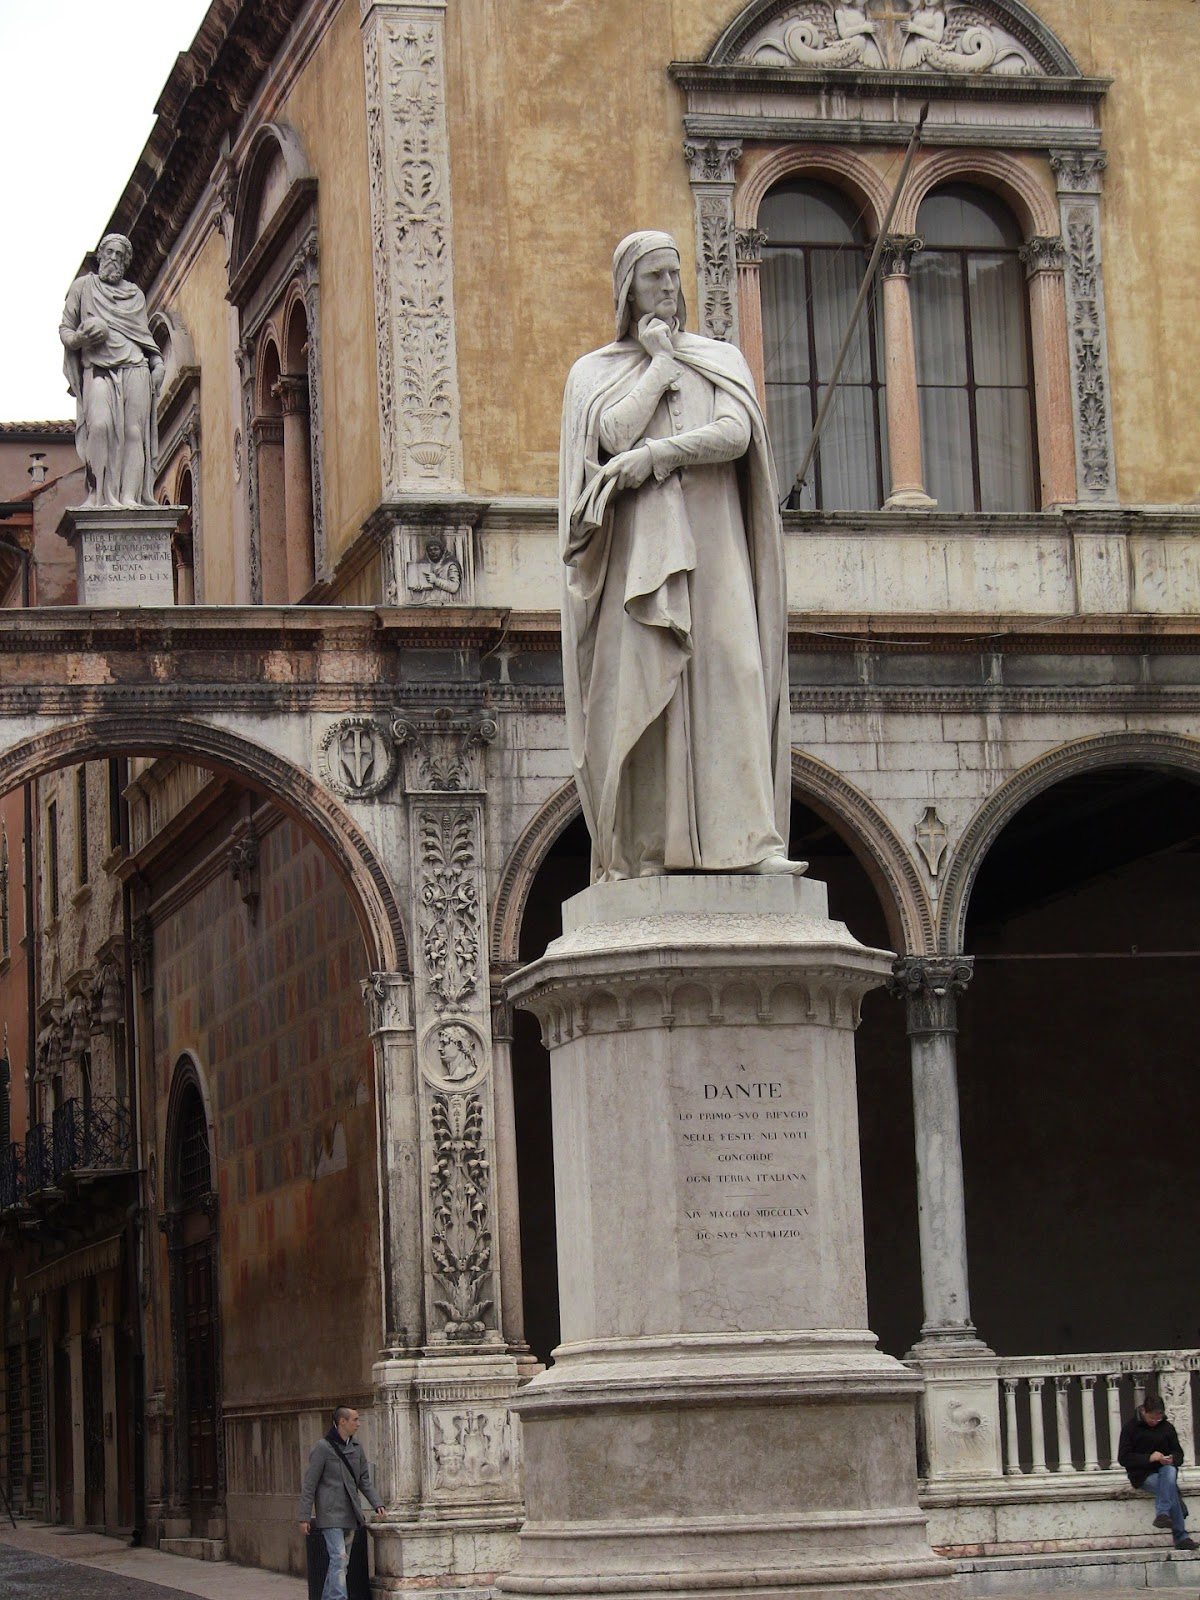 Homage to exile. Dante stands proud in the Piazza dei Signoria. Photo: Gail Keller, WineTrekkerTV.com.